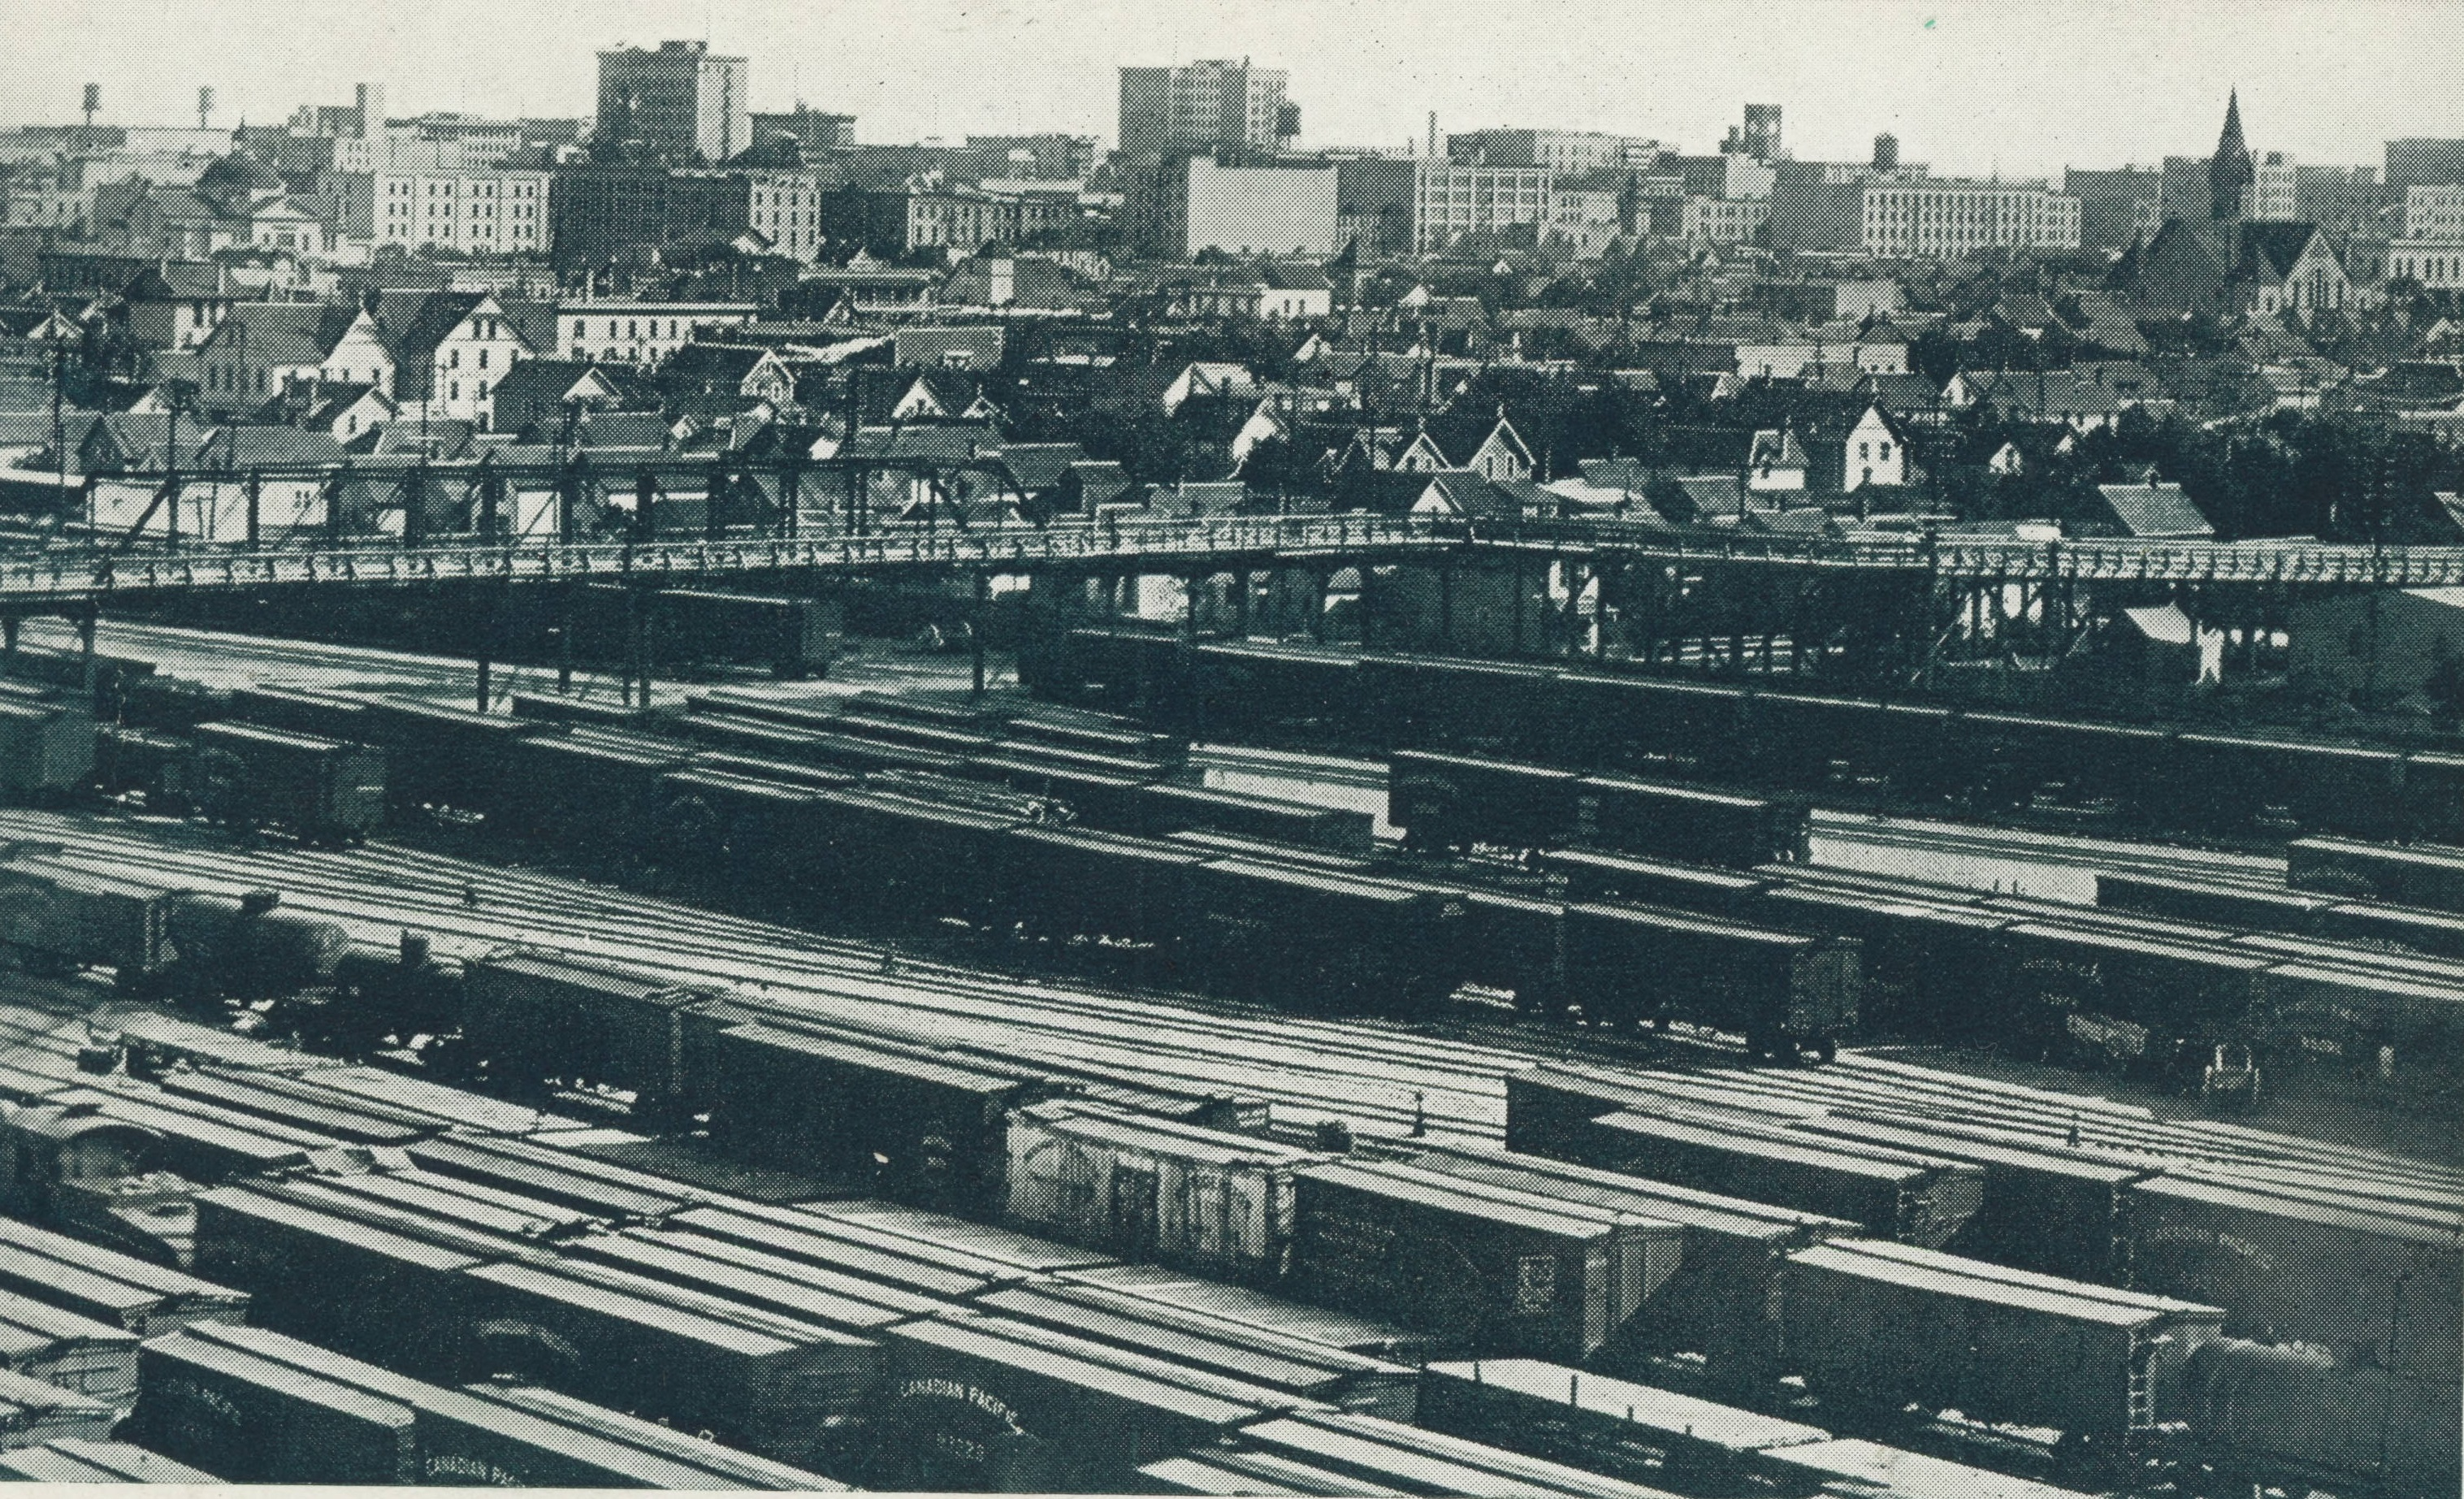 The Salter Street Bridge (now the Slaw Rebchuk Bridge) passes over the CP Rail yards in this photo taken sometime between 1904 and 1911. The photographer is in the working-class North End, which the railway cut off from downtown and wealthy south Winnipeg, where the Union Bank Tower reaches into the sky, left of centre on the horizon. Knox Presbyterian Church, now Knox United, is on the right.